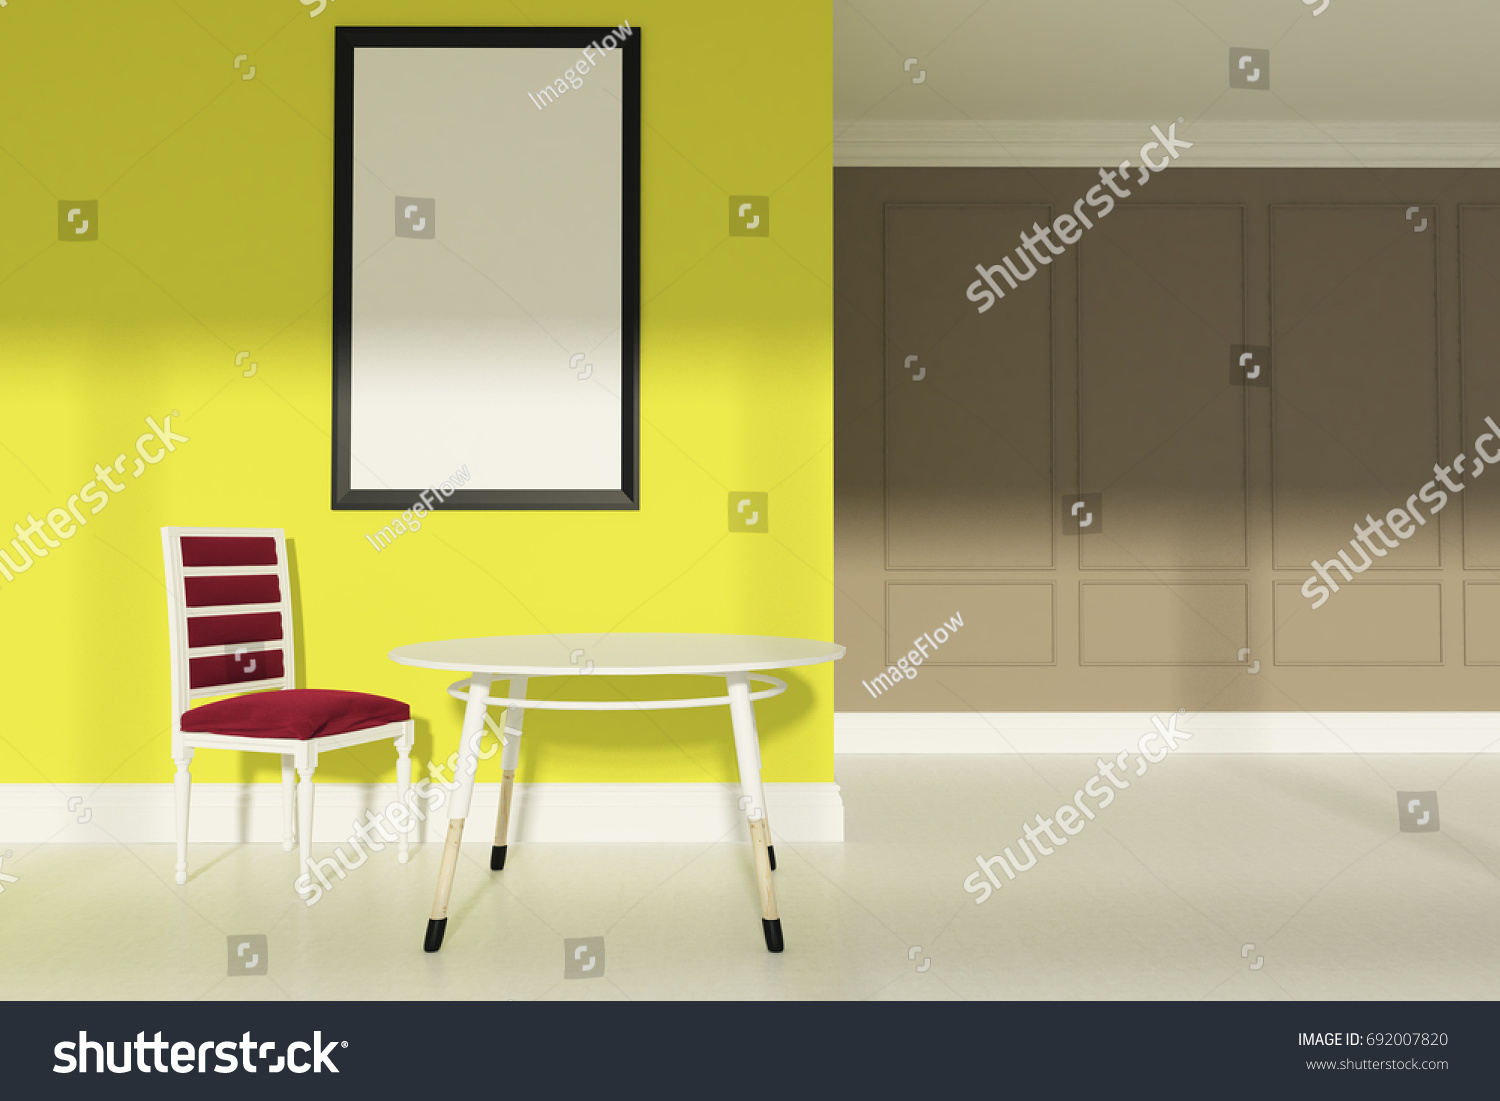 Dining Room Beige Yellow Walls White Stock Illustration 692007820 ...